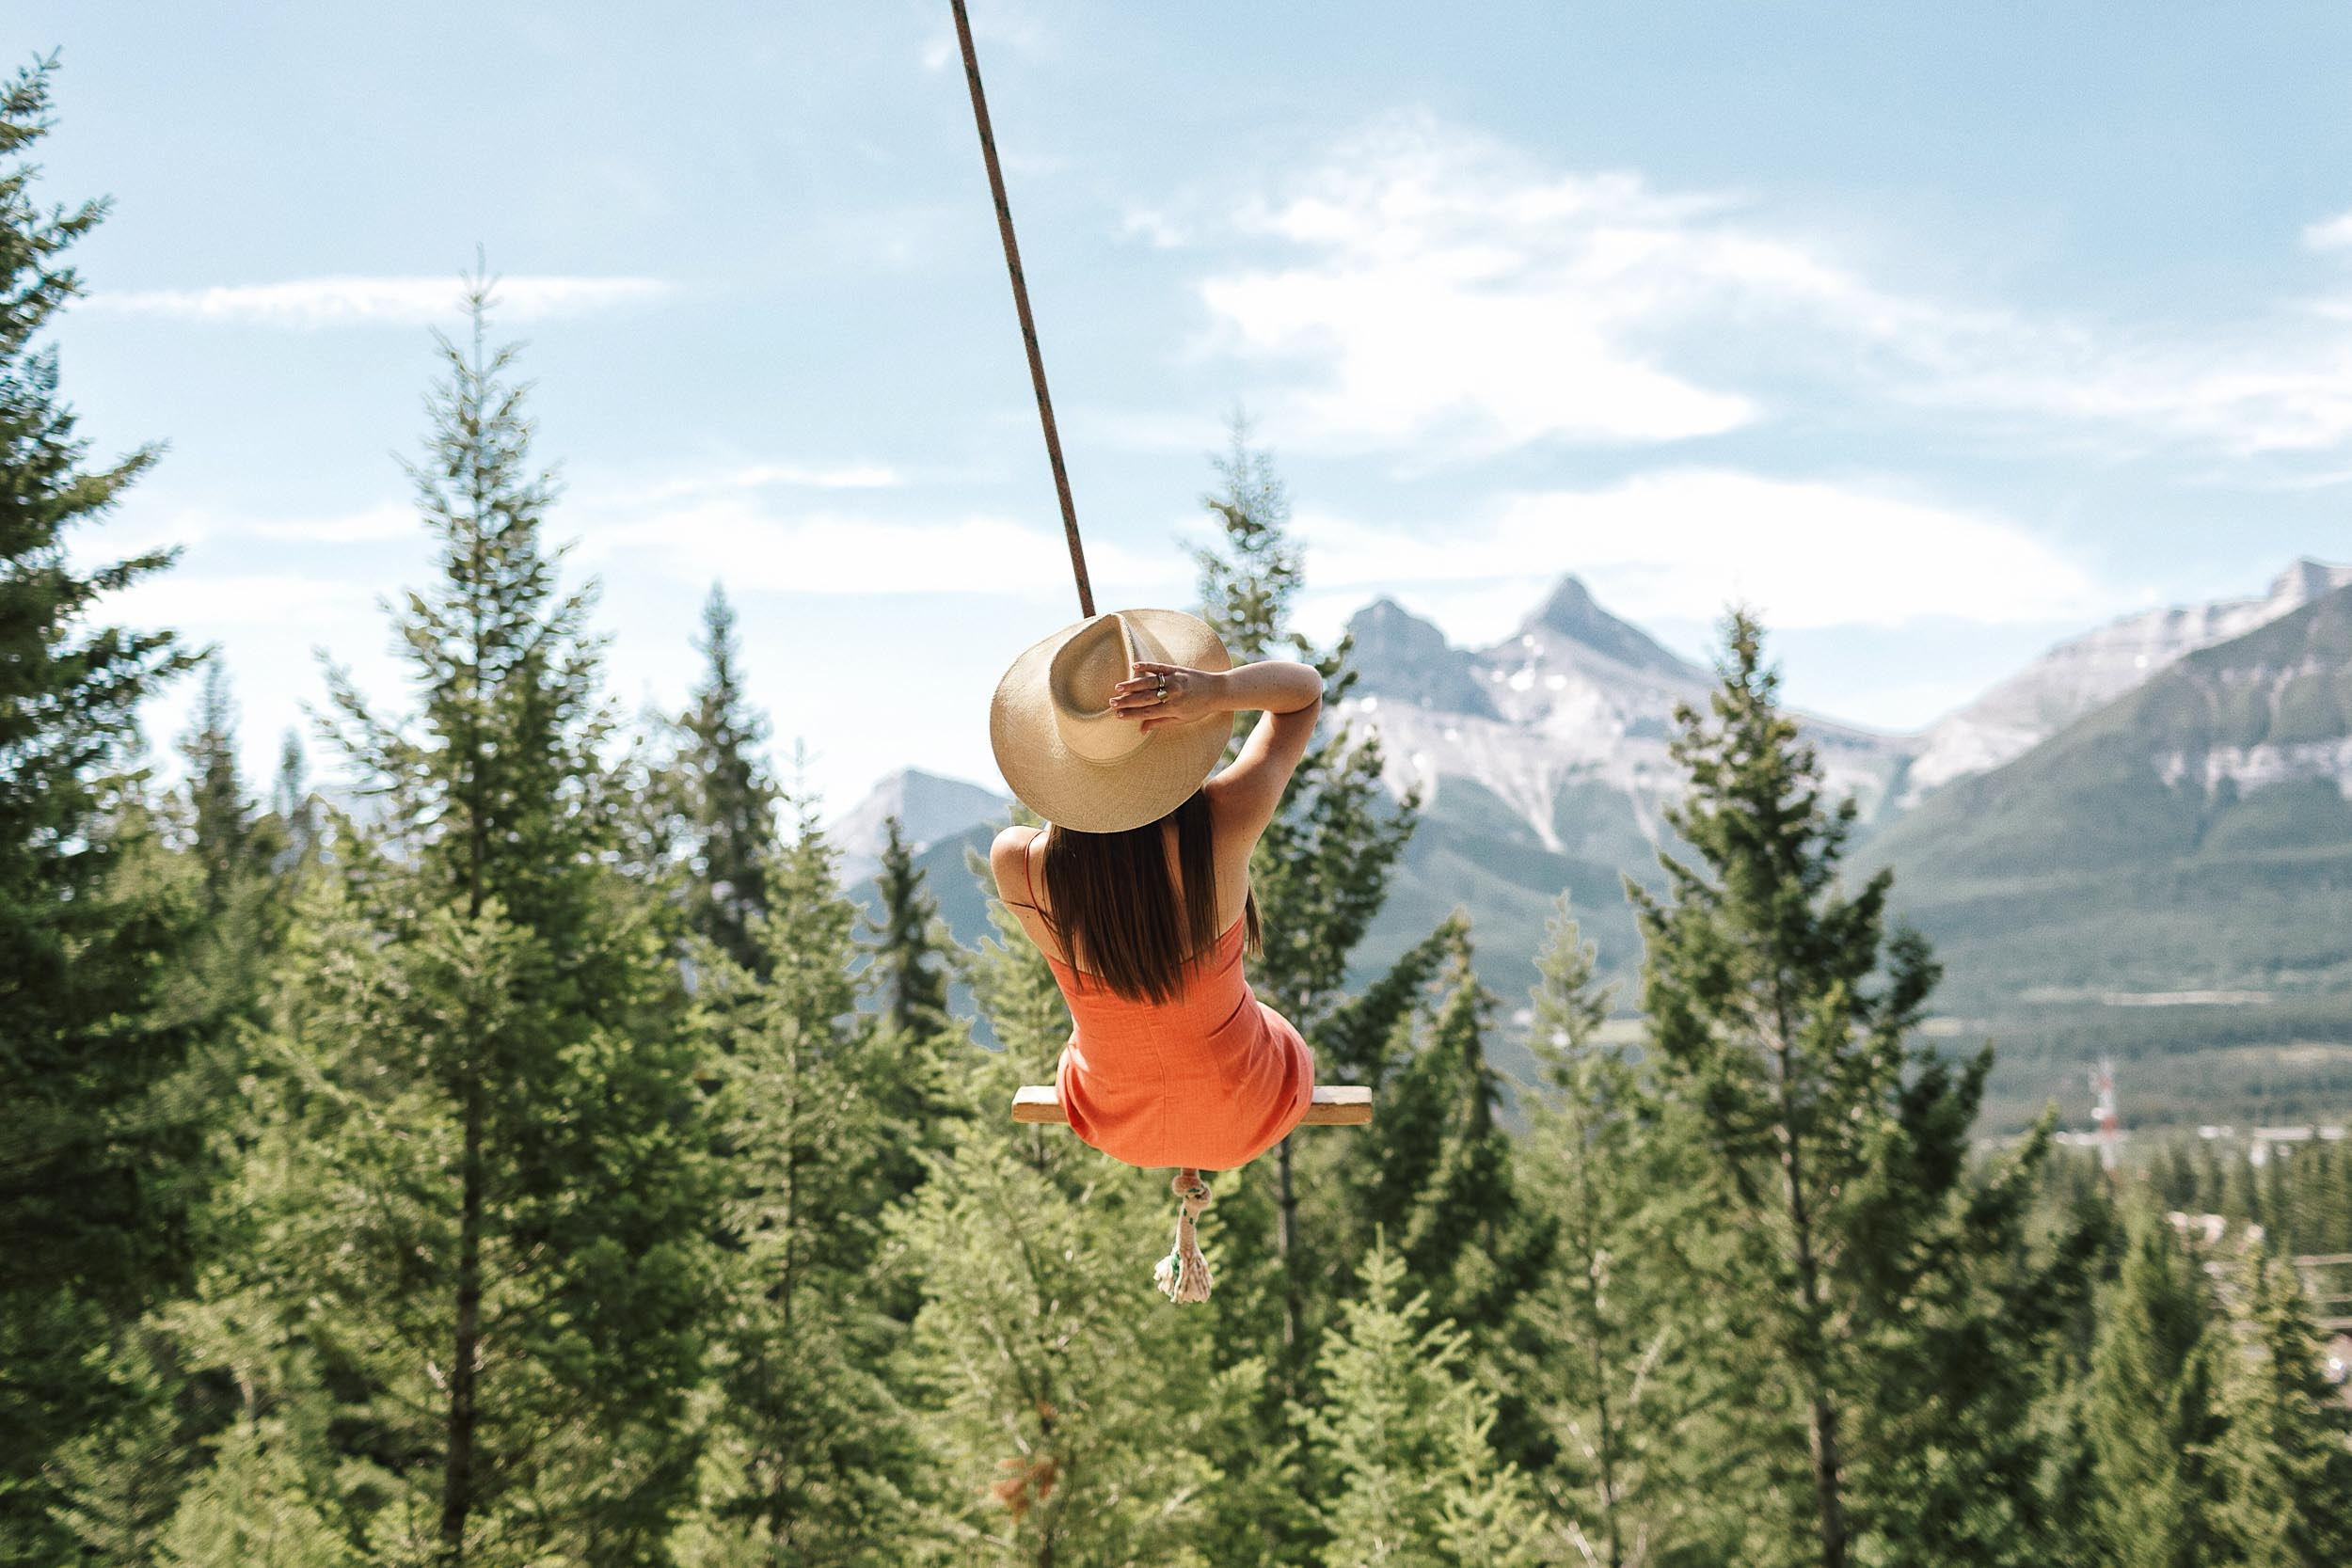 How to find the Canmore rope swing near Banff, Canada